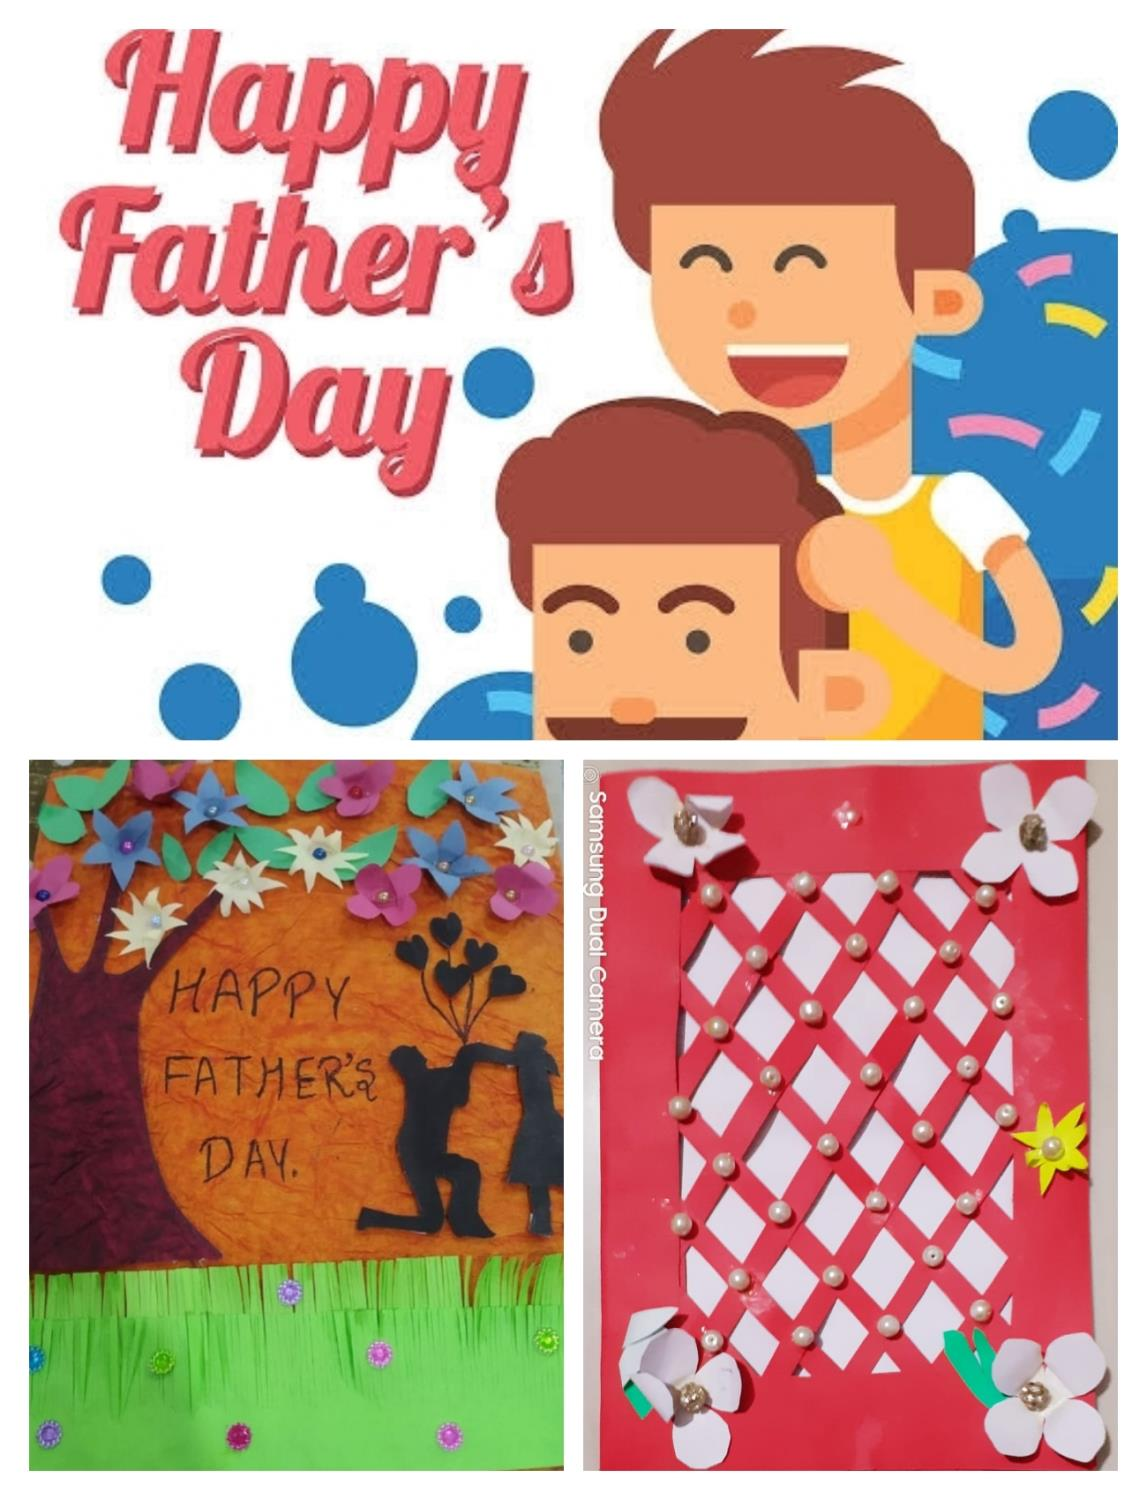 Online Card Making Competition on the occasion of Father